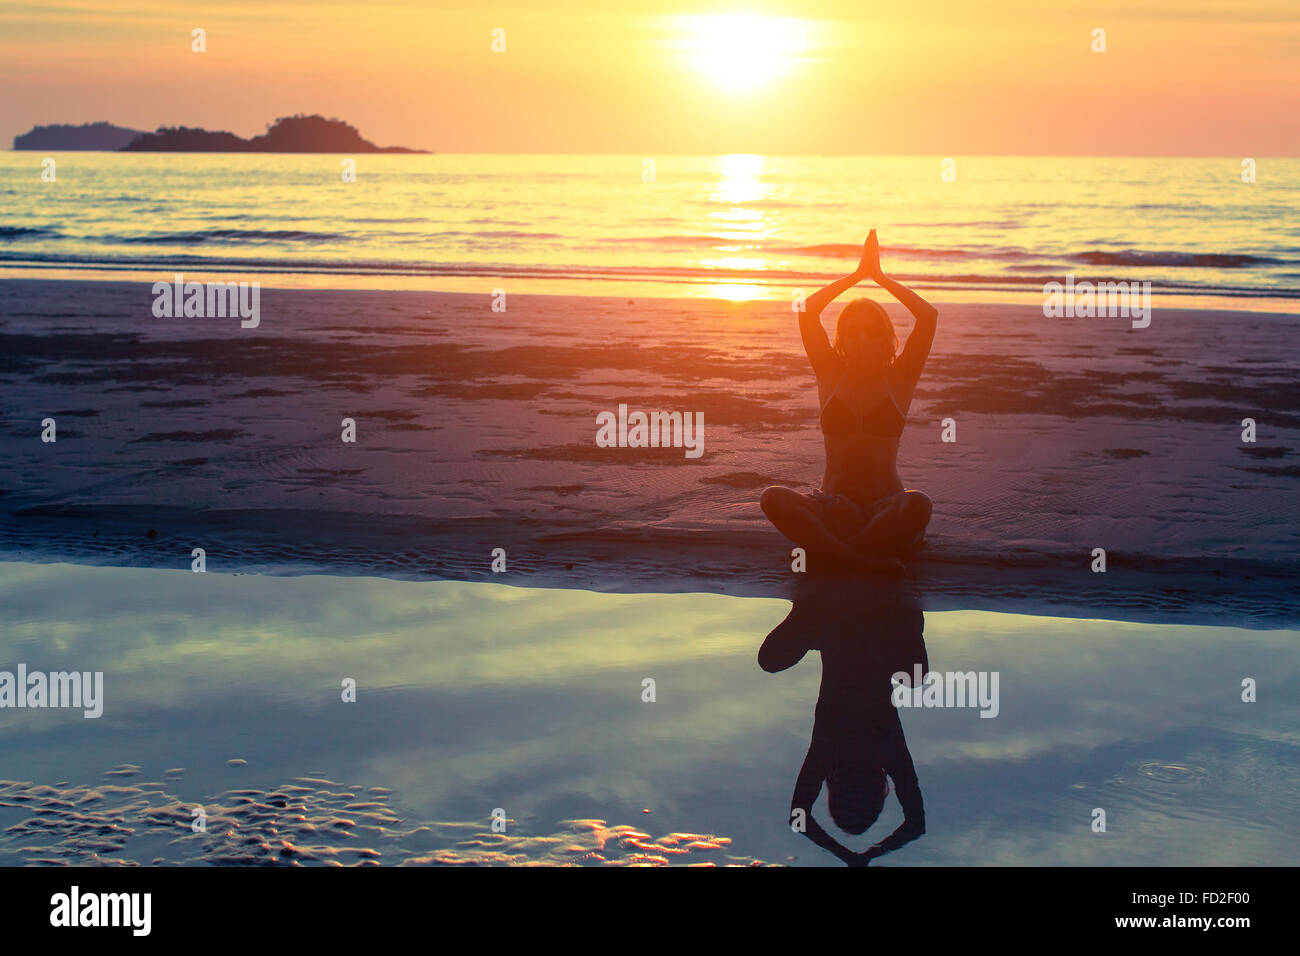 Woman silhouette practicing yoga on the beach at amazing sunset. - Stock Image